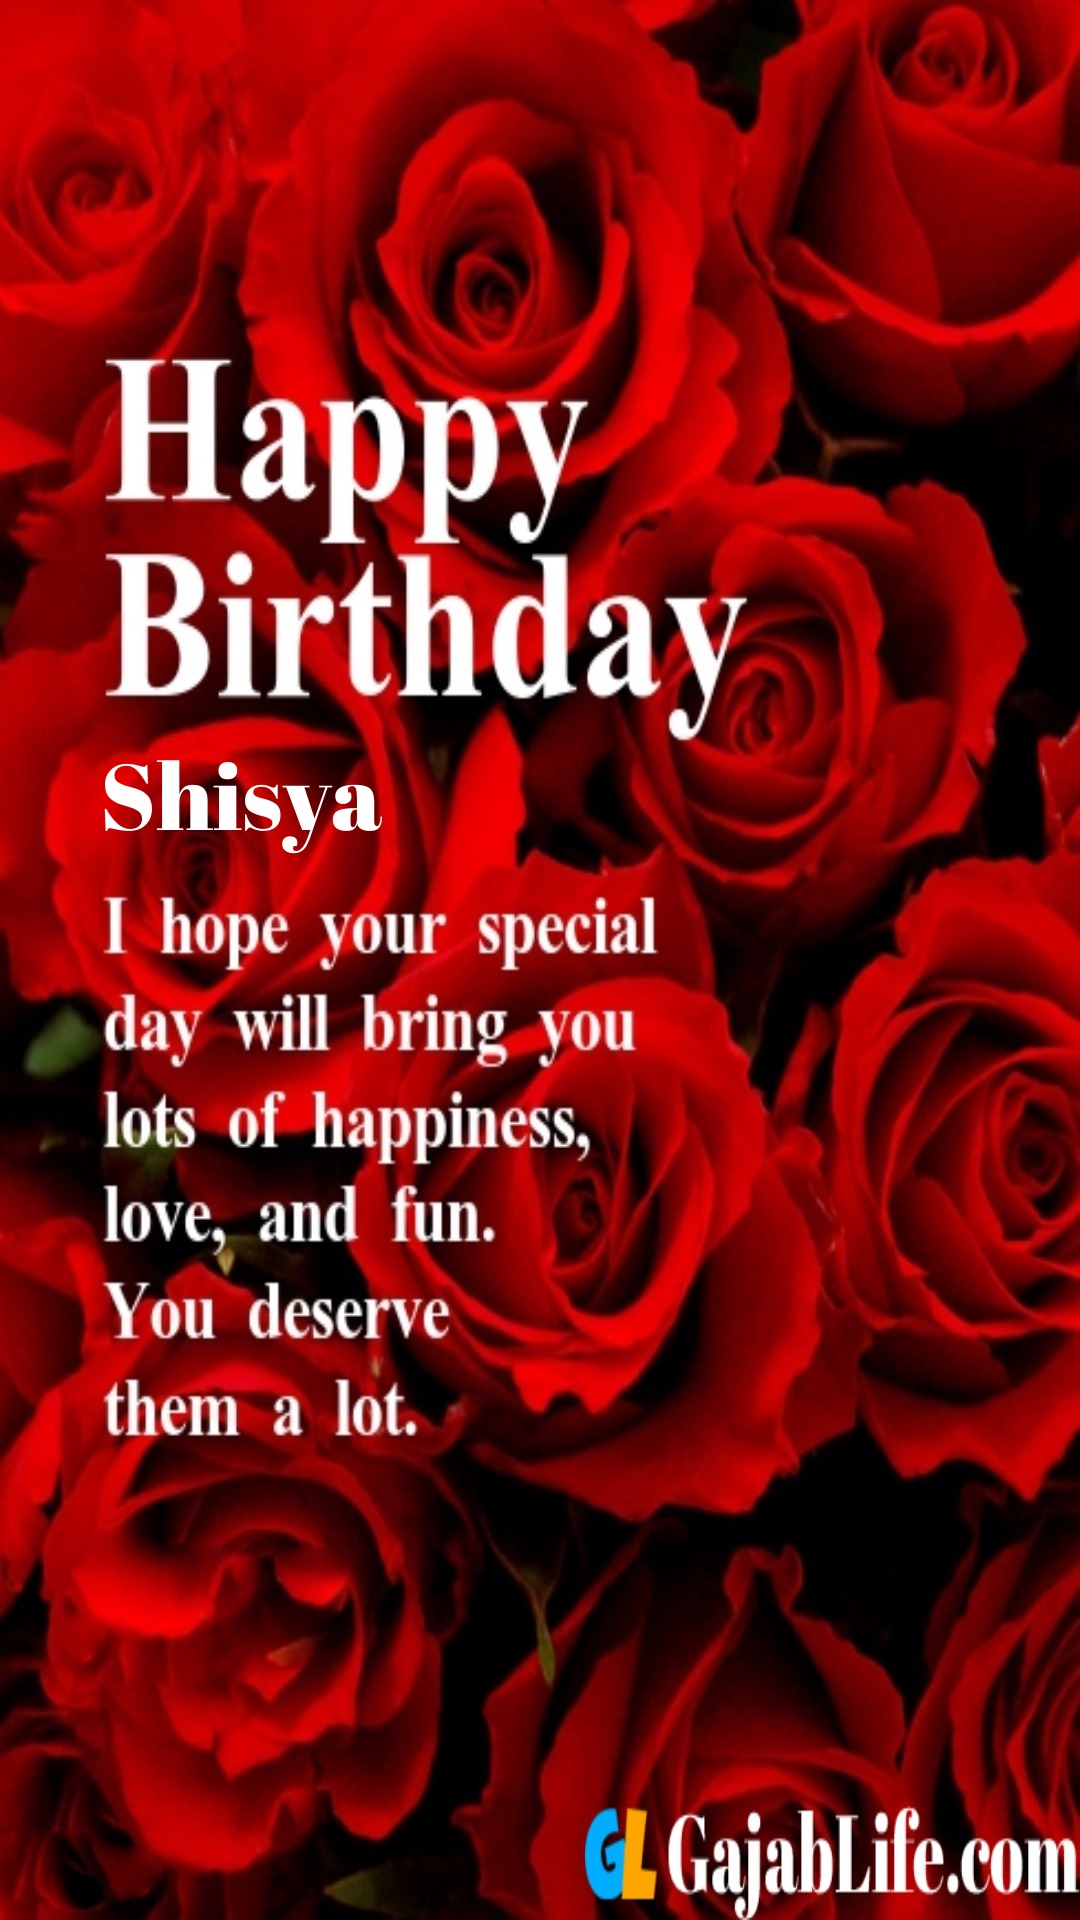 Shisya birthday greeting card with rose & love